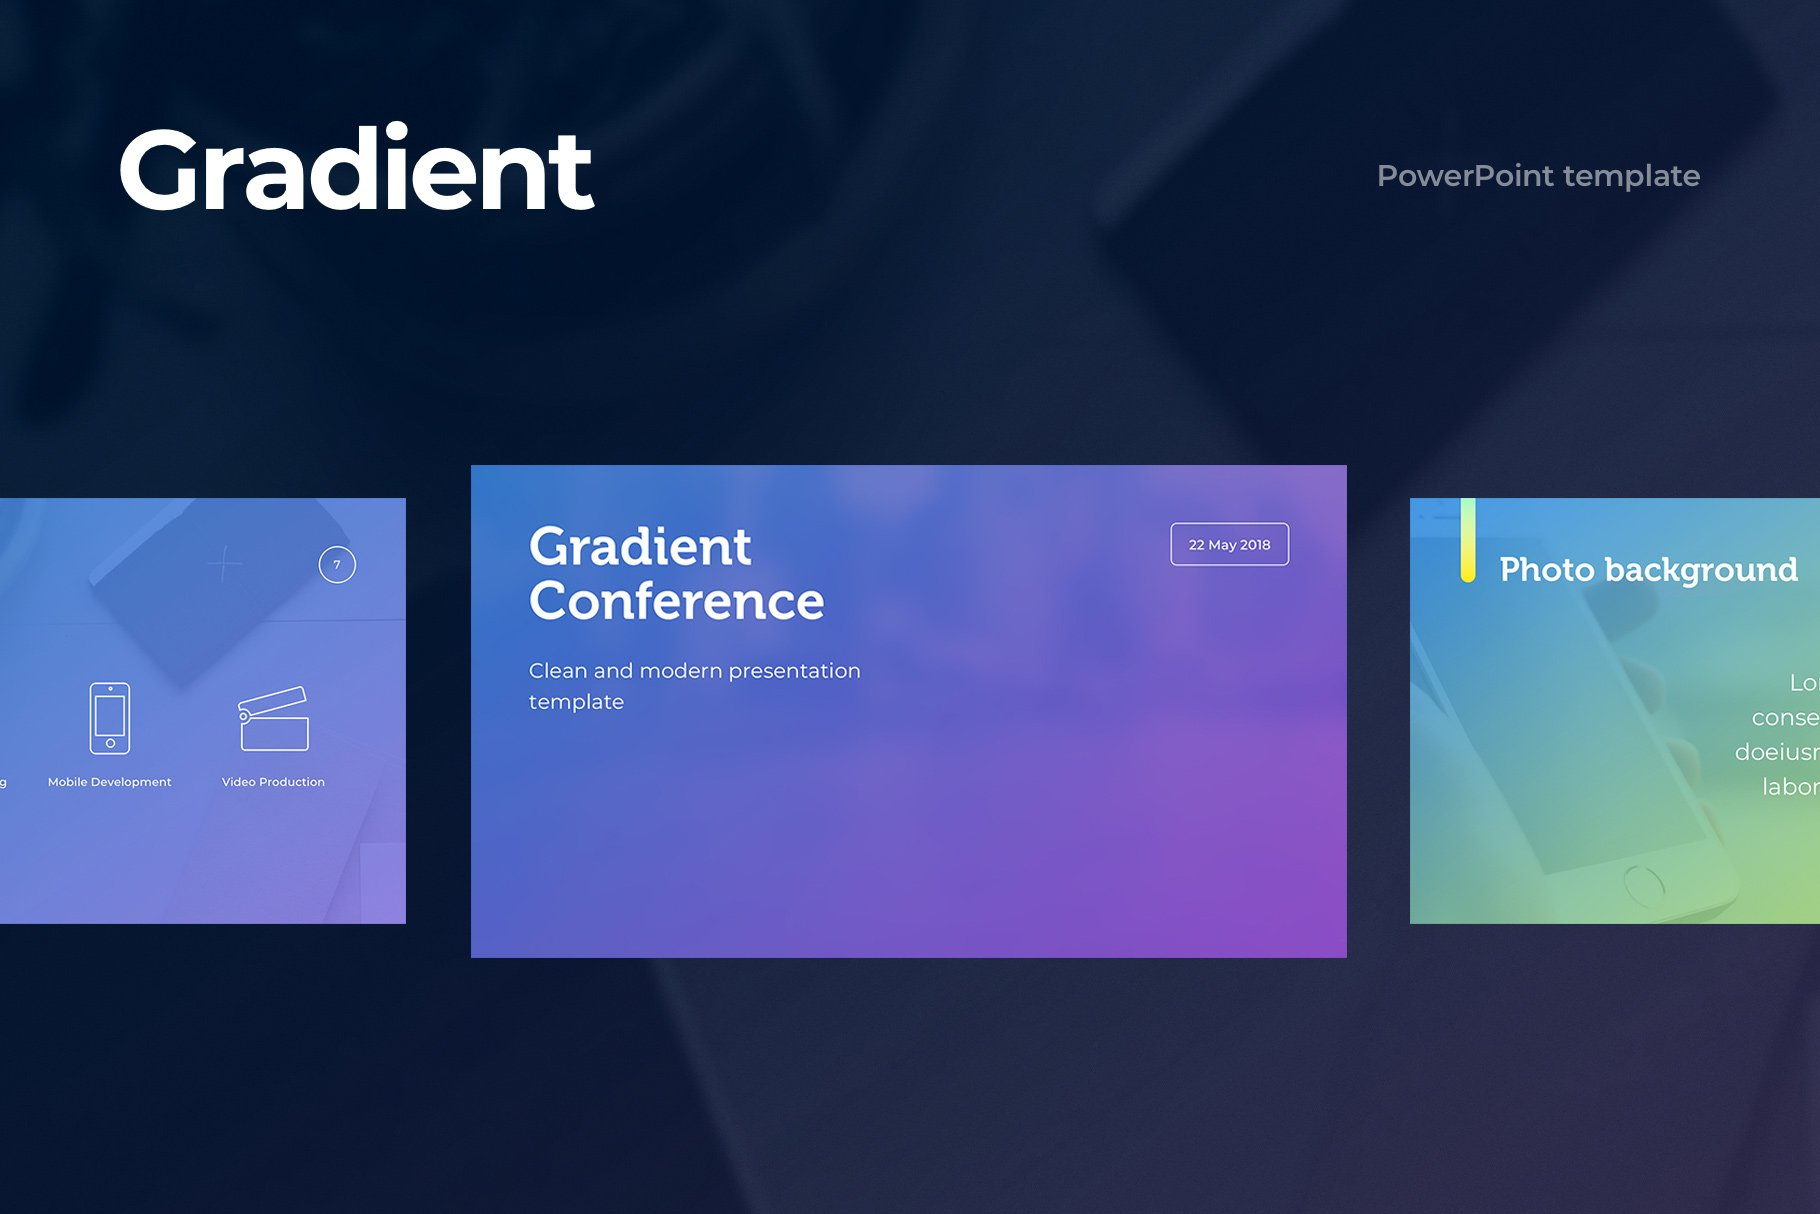 gradient powerpoint template presentation templates creative market